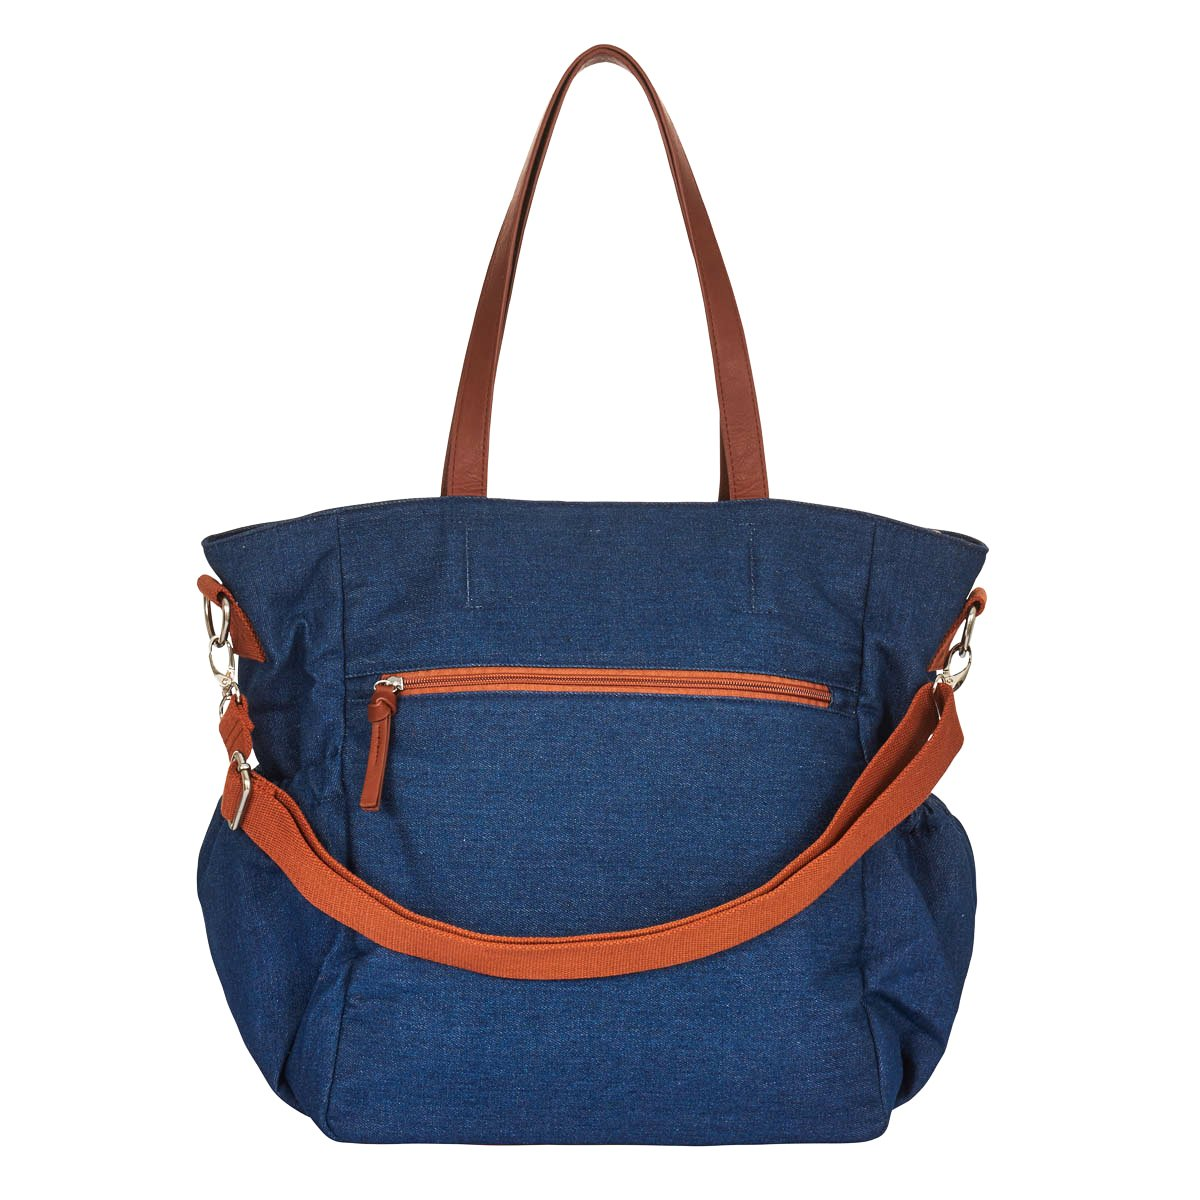 Denim Diaper Bag Tote Large Unisex Stylish Travel Baby Bag by Hip Cub for Mom and Dad with Changing Pad and Stroller Straps